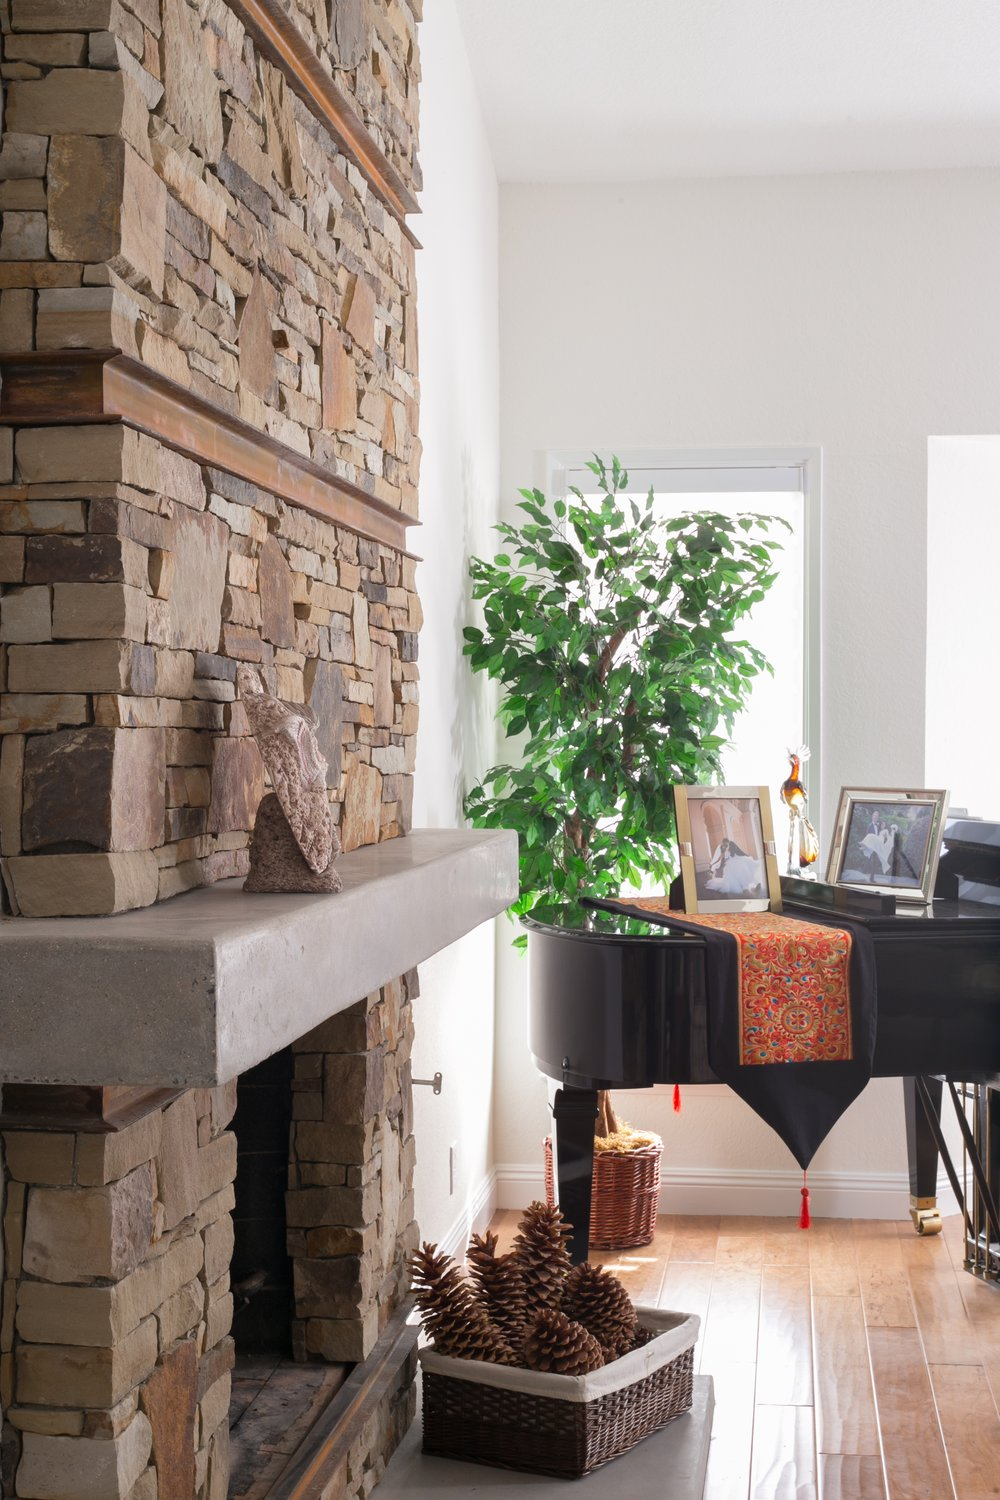 Extra warmth: stacked stone fireplace surround with rusted channels and a polished concrete mantel and hearth